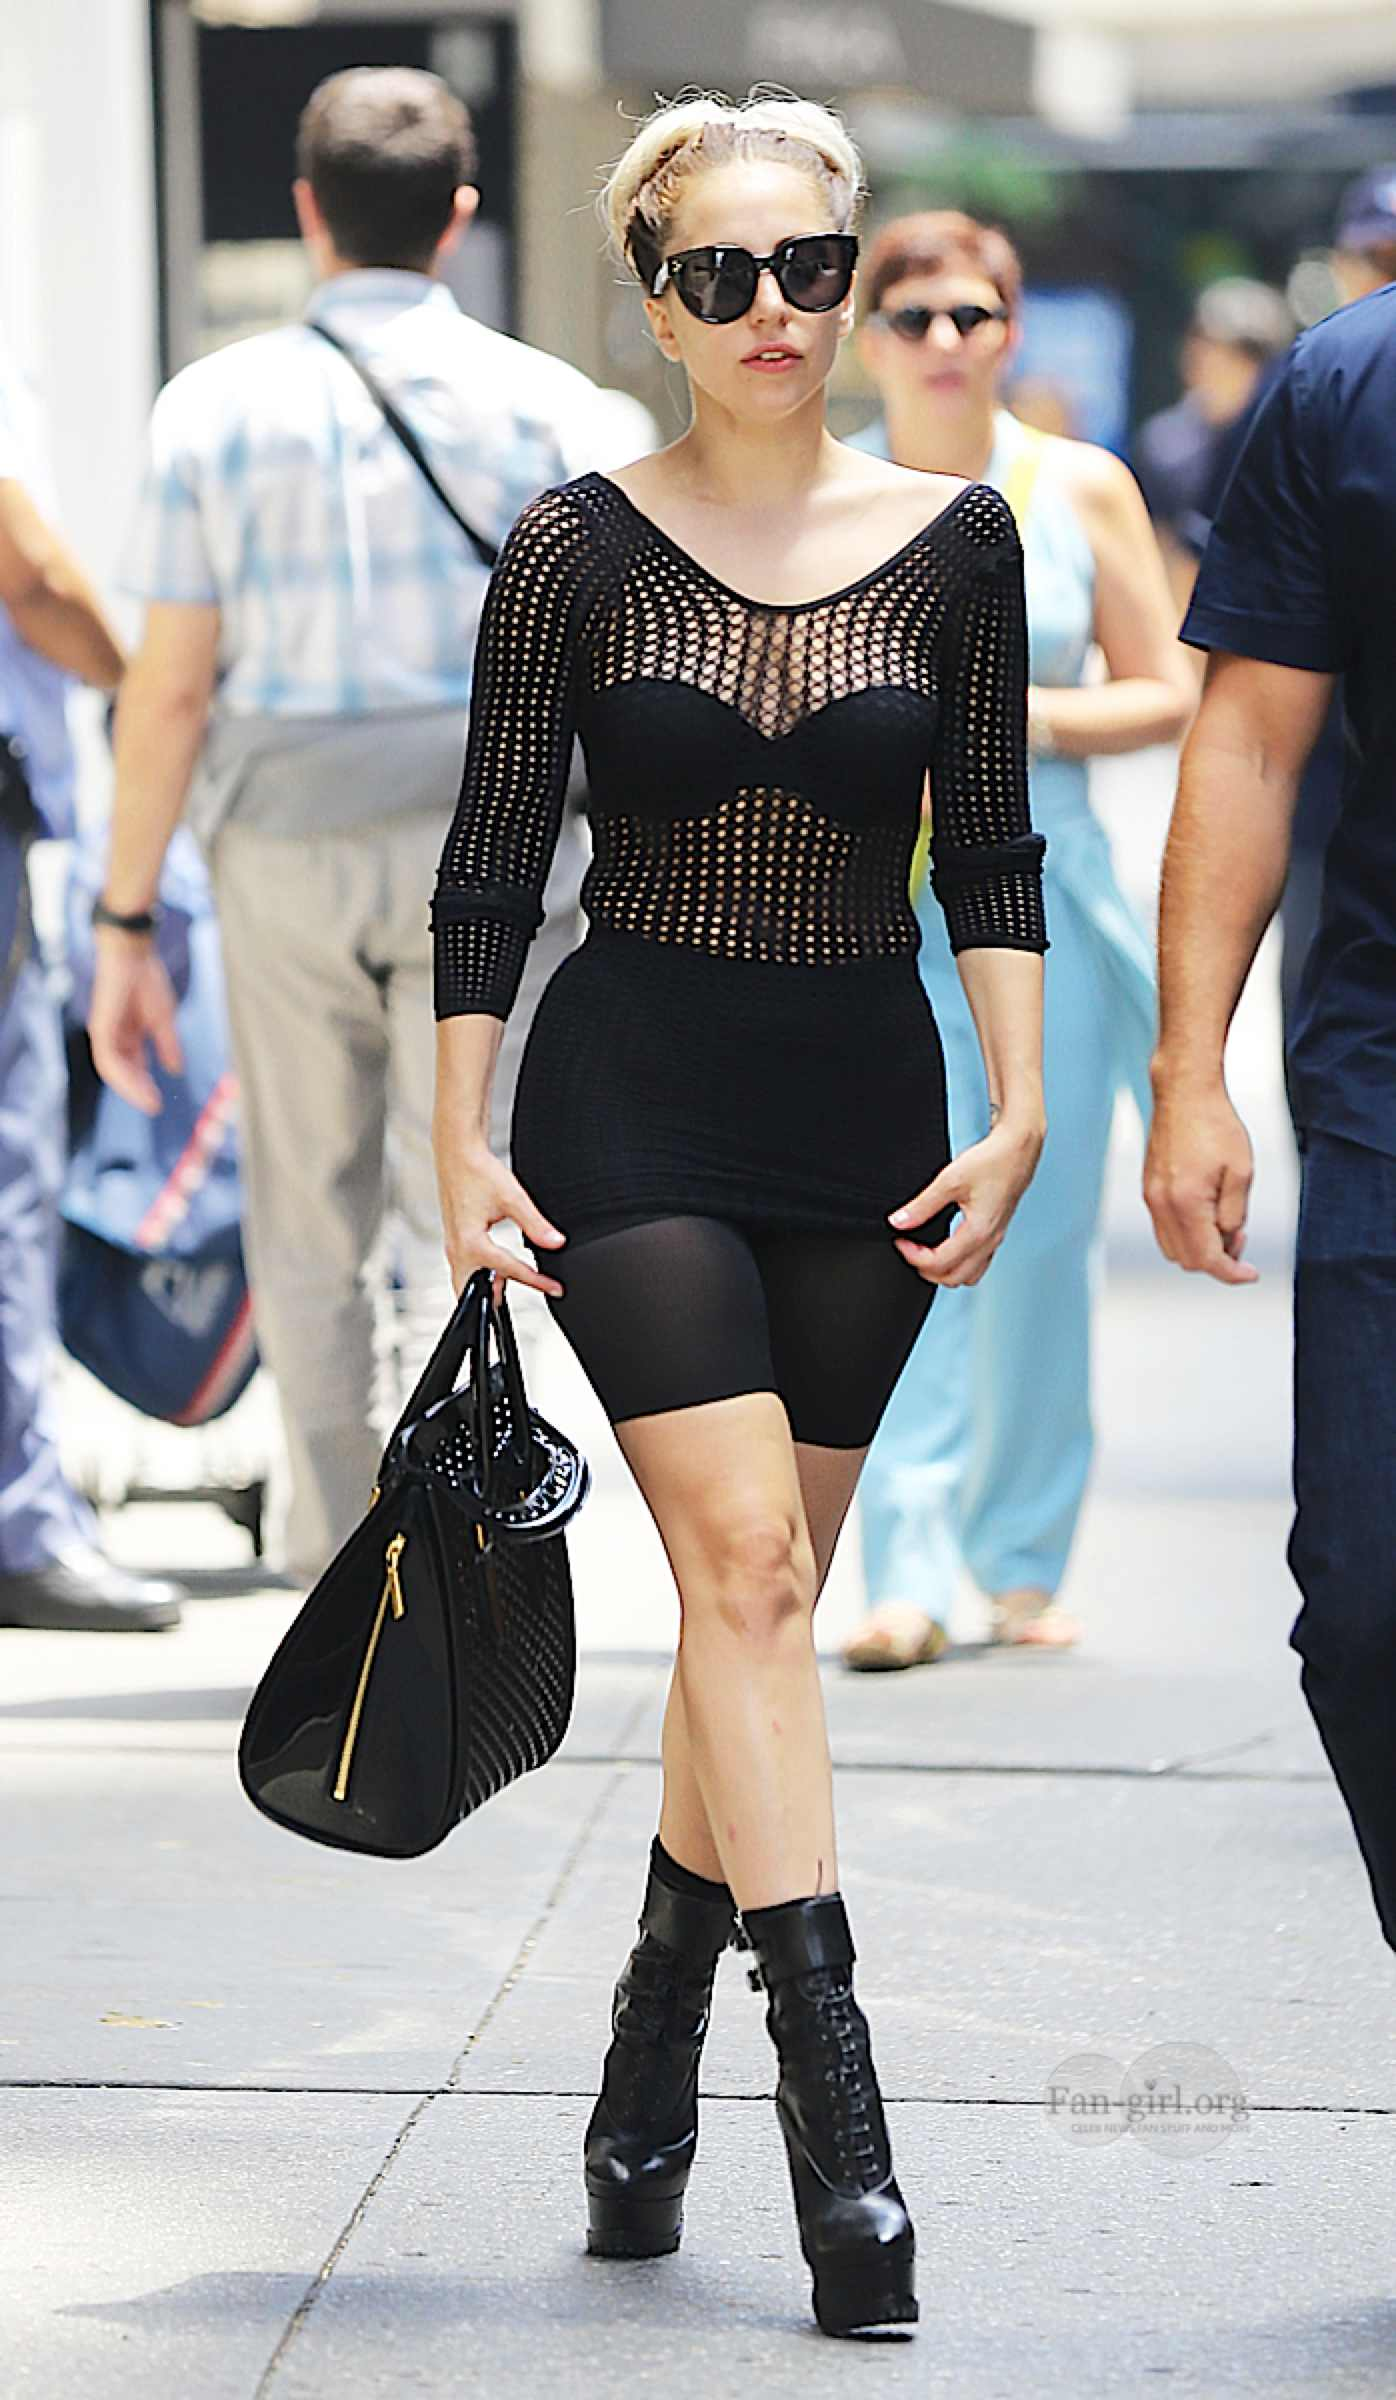 Lady-Gaga---in-Stylish-outfit-in-NYC--03